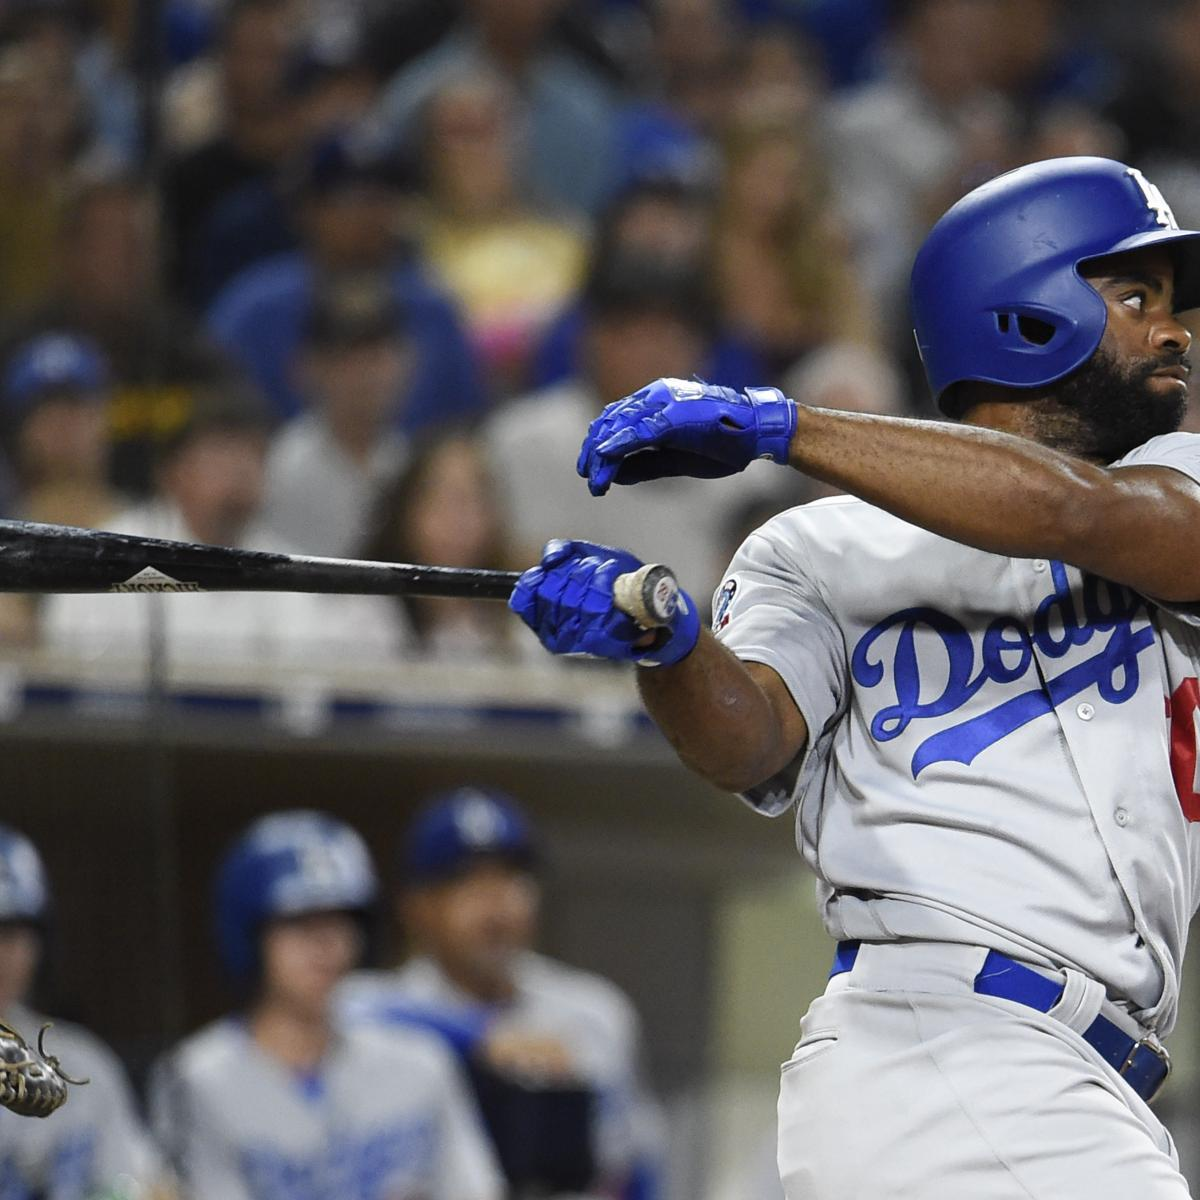 Dodgers' Andrew Toles Arrested After Being Found Sleeping Behind Florida Airport